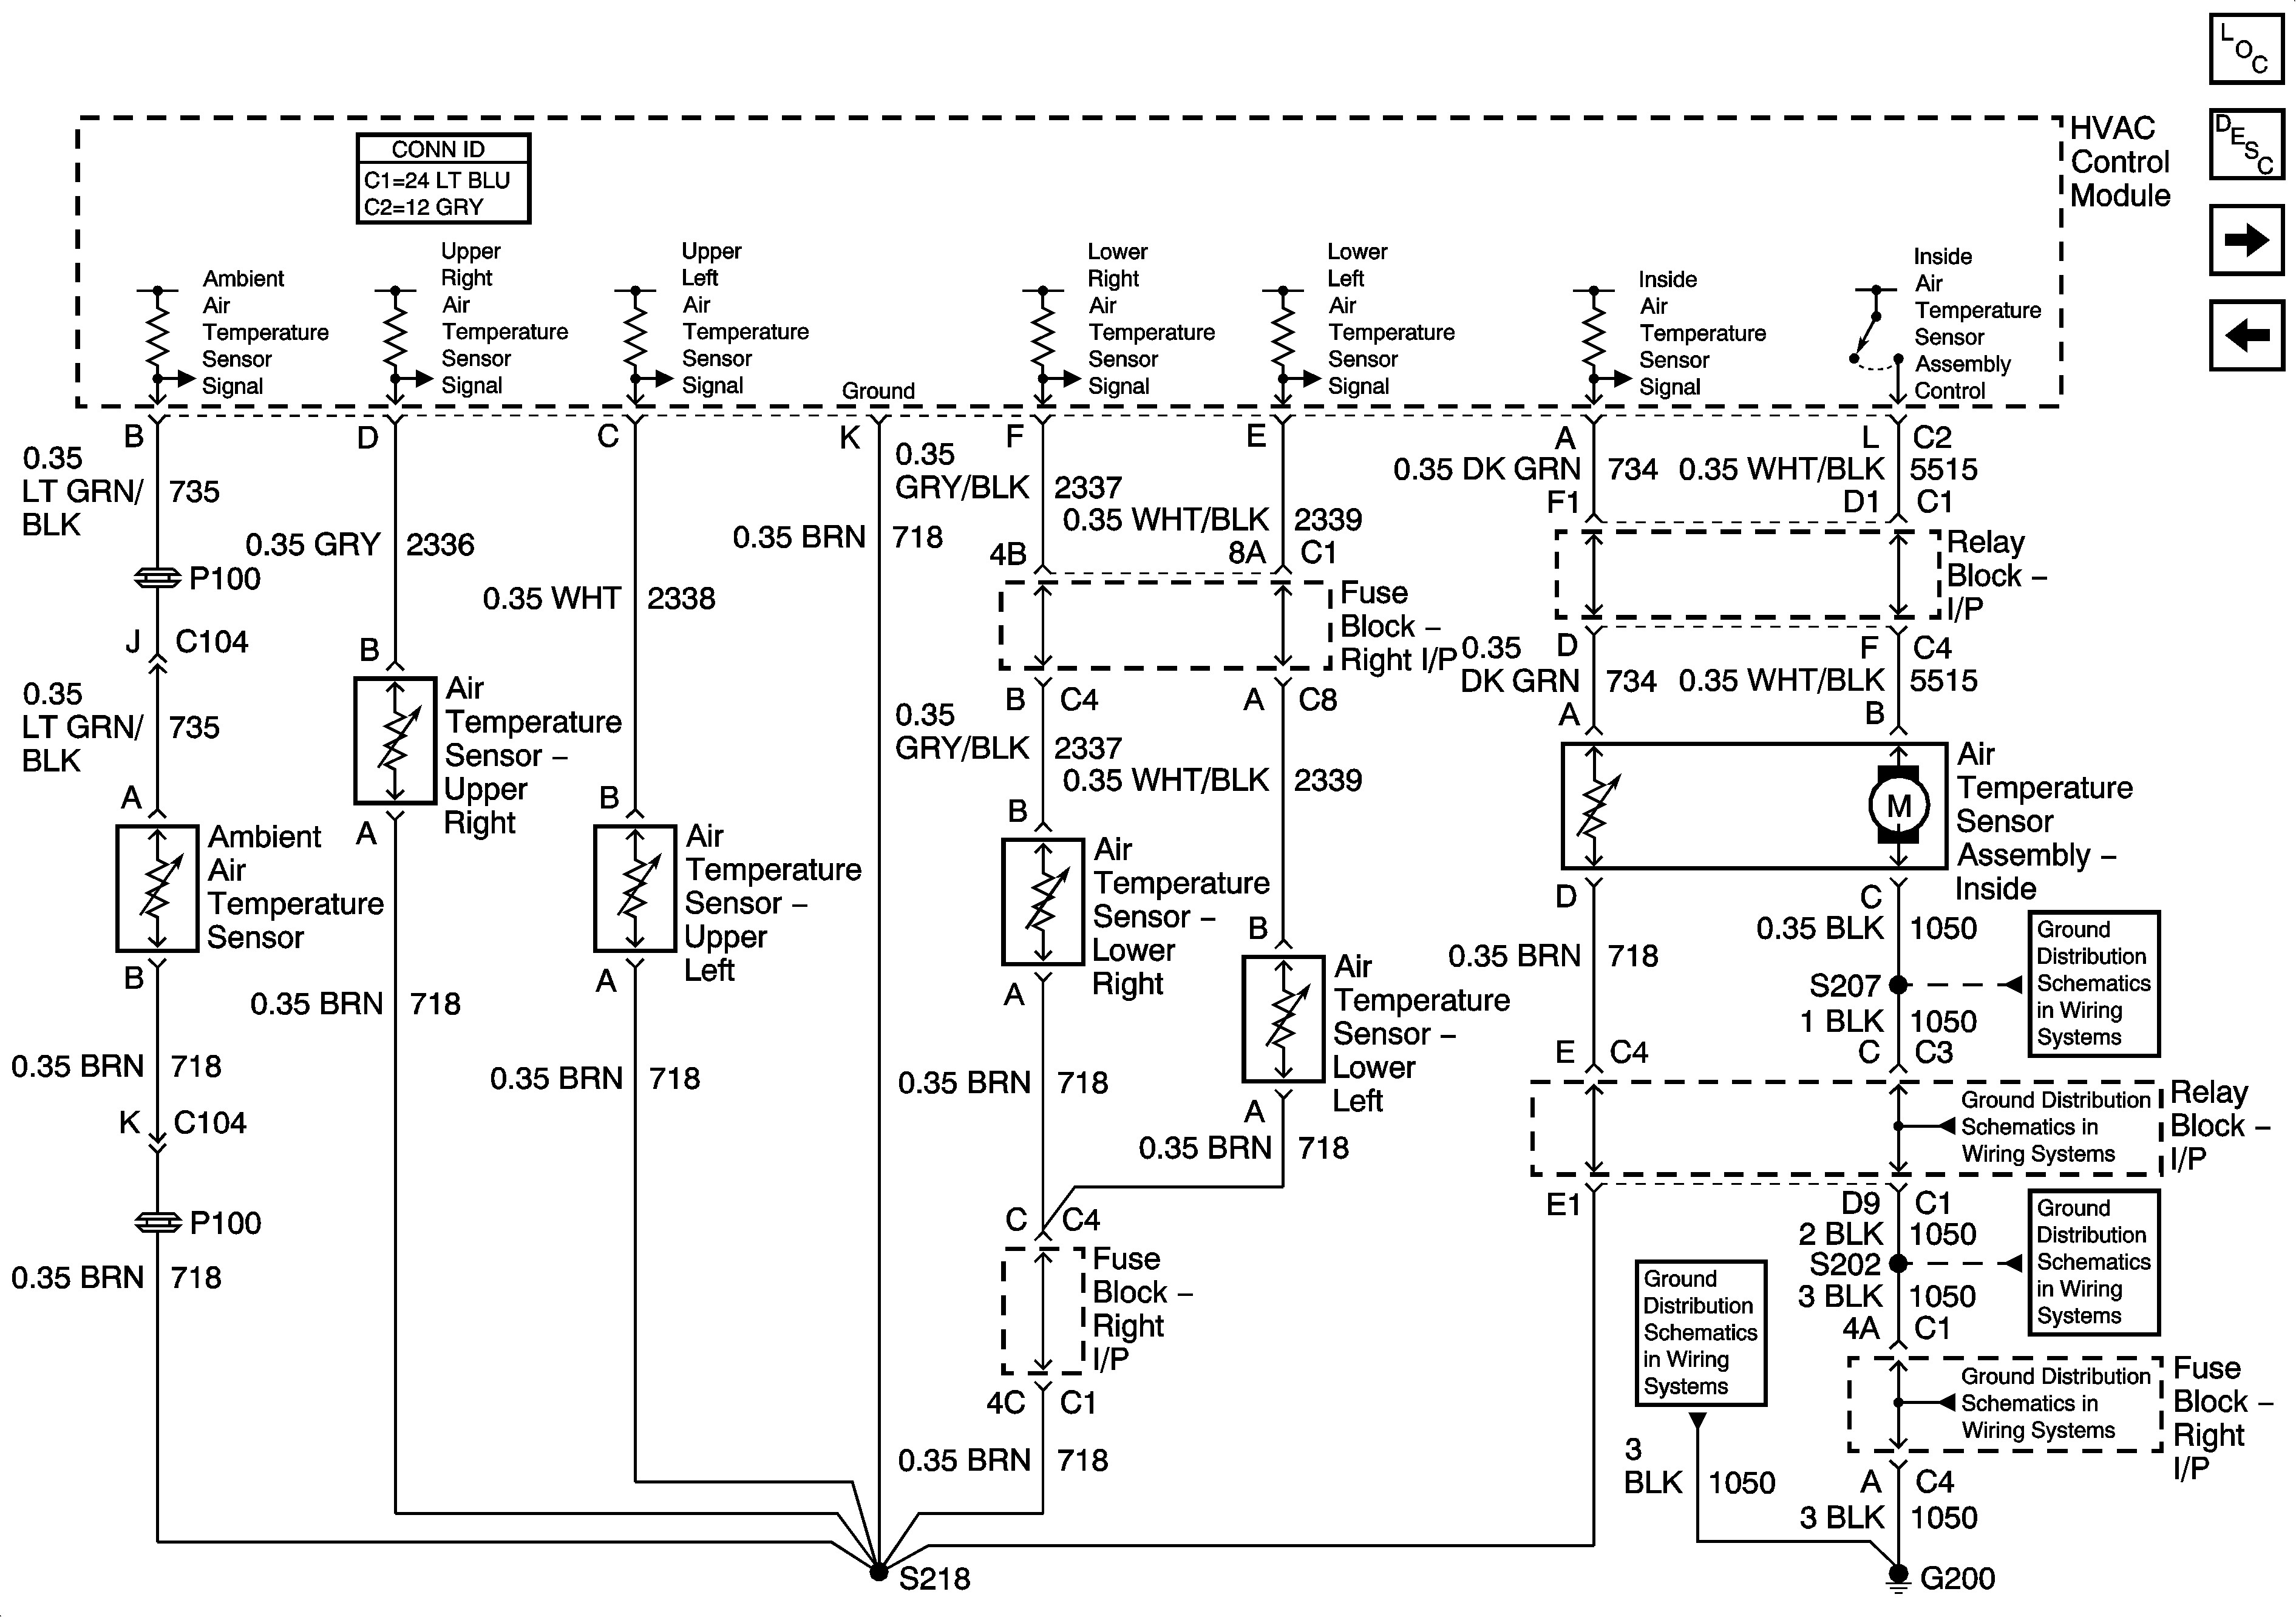 2002 chevy tahoe radio wiring diagram Collection-2003 chevy tahoe radio wiring diagram diagram 2005 cobalt radio wiring diagram 2002 chevy tahoe radio 12-t